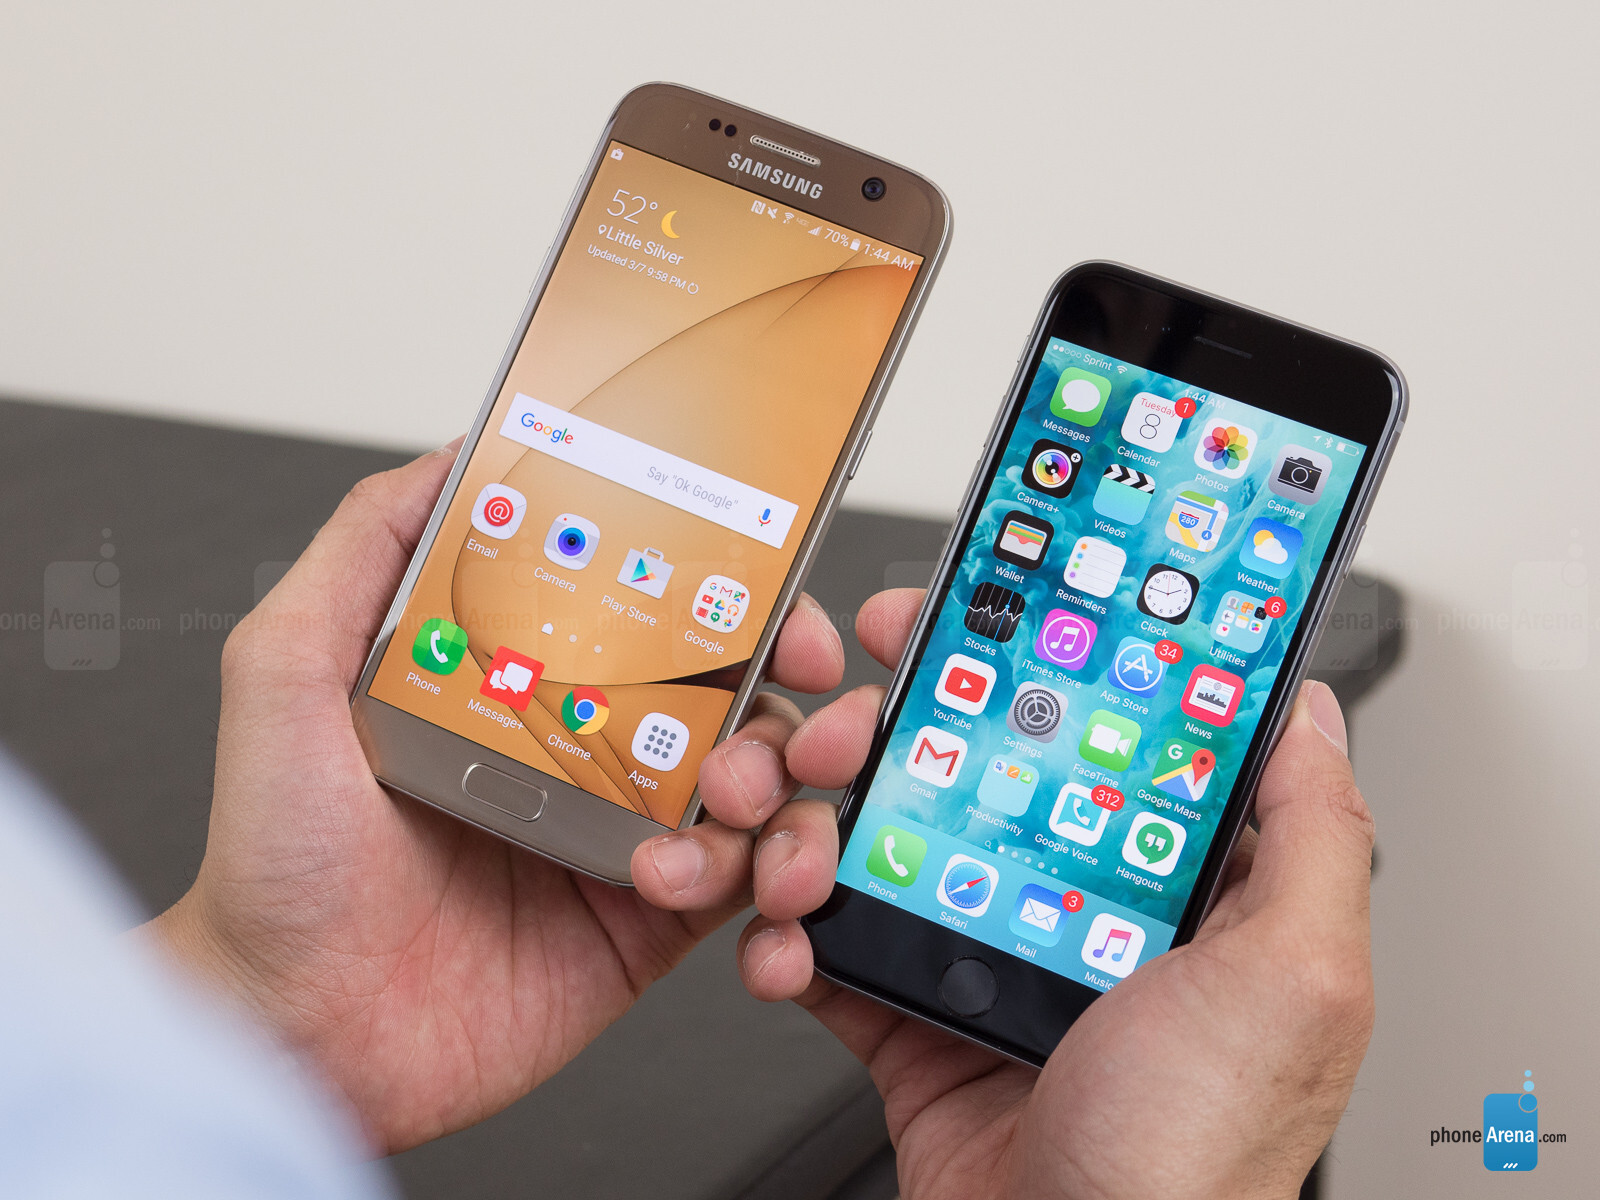 iphone 8 vs galaxy s7 edge